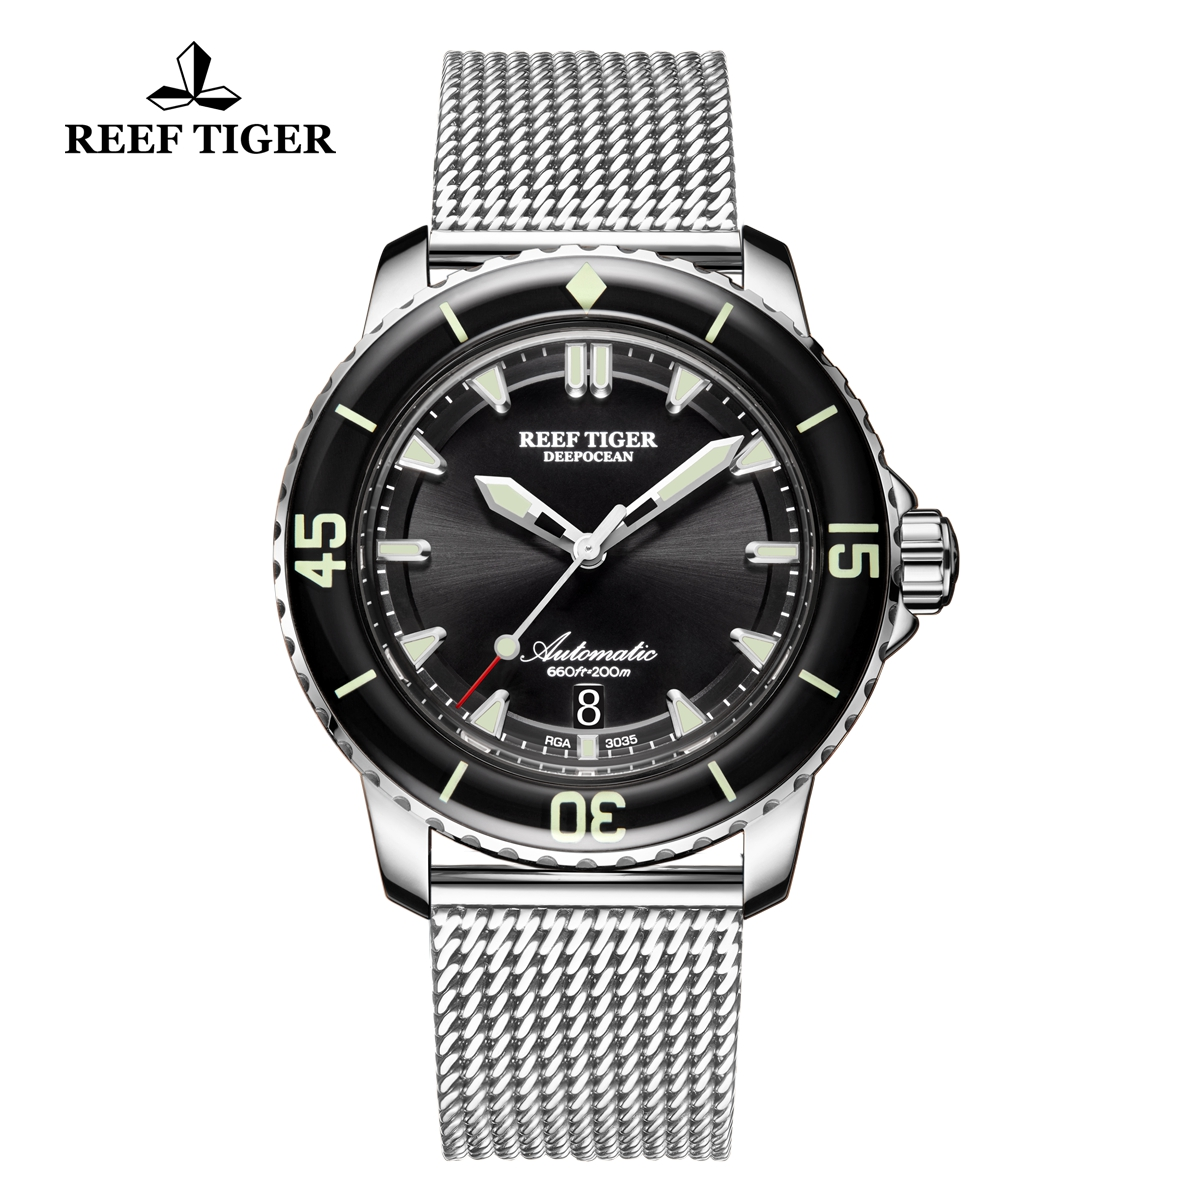 Reef Tiger Deep Ocean Men's Casual Steel Watches Black Dial Automatic Watch RGA3035-YBY